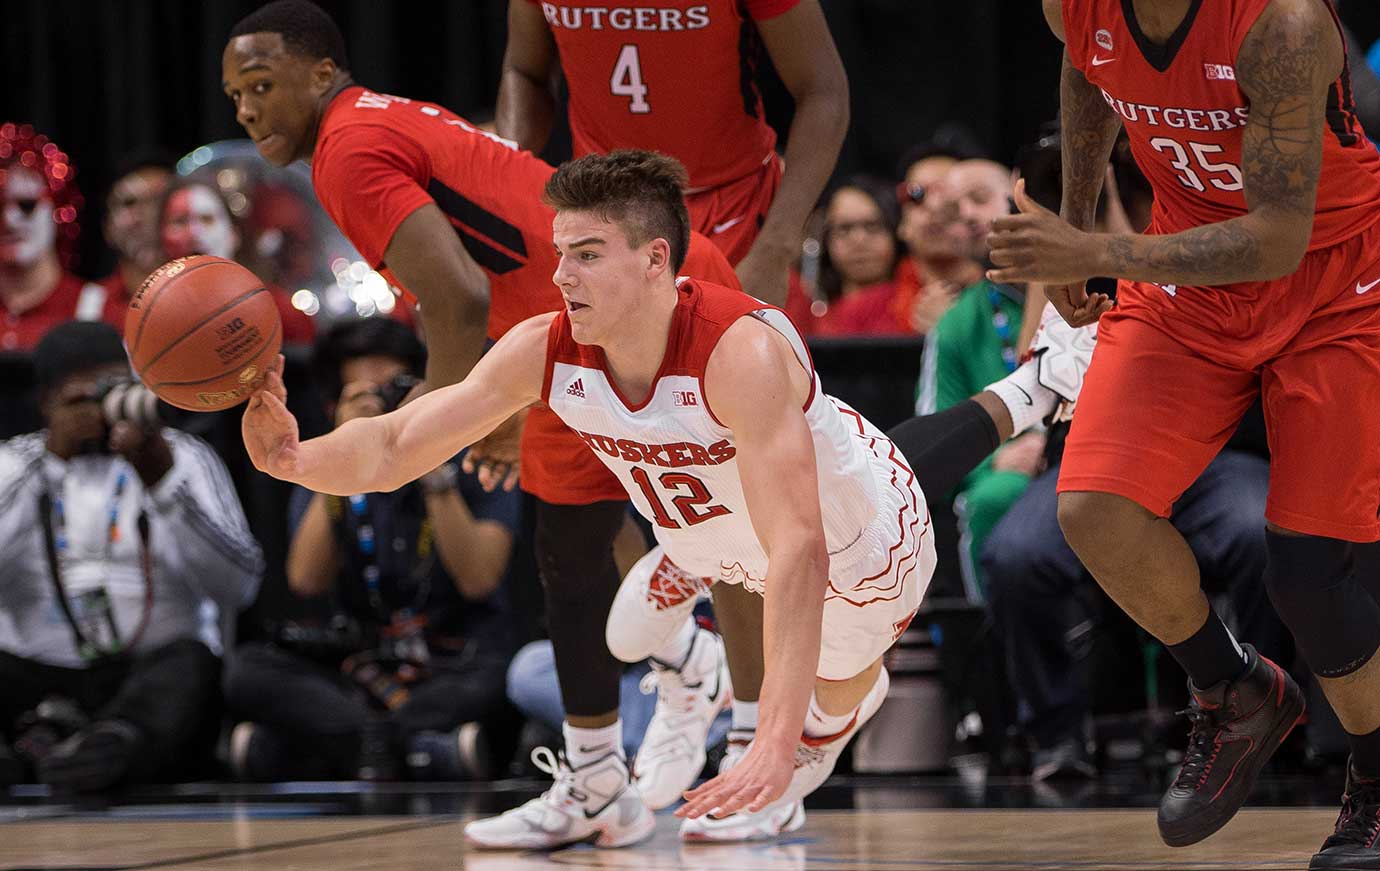 Nebraska forward Michael Jacobson taps a loose ball to a teammate while facing Rutgers.